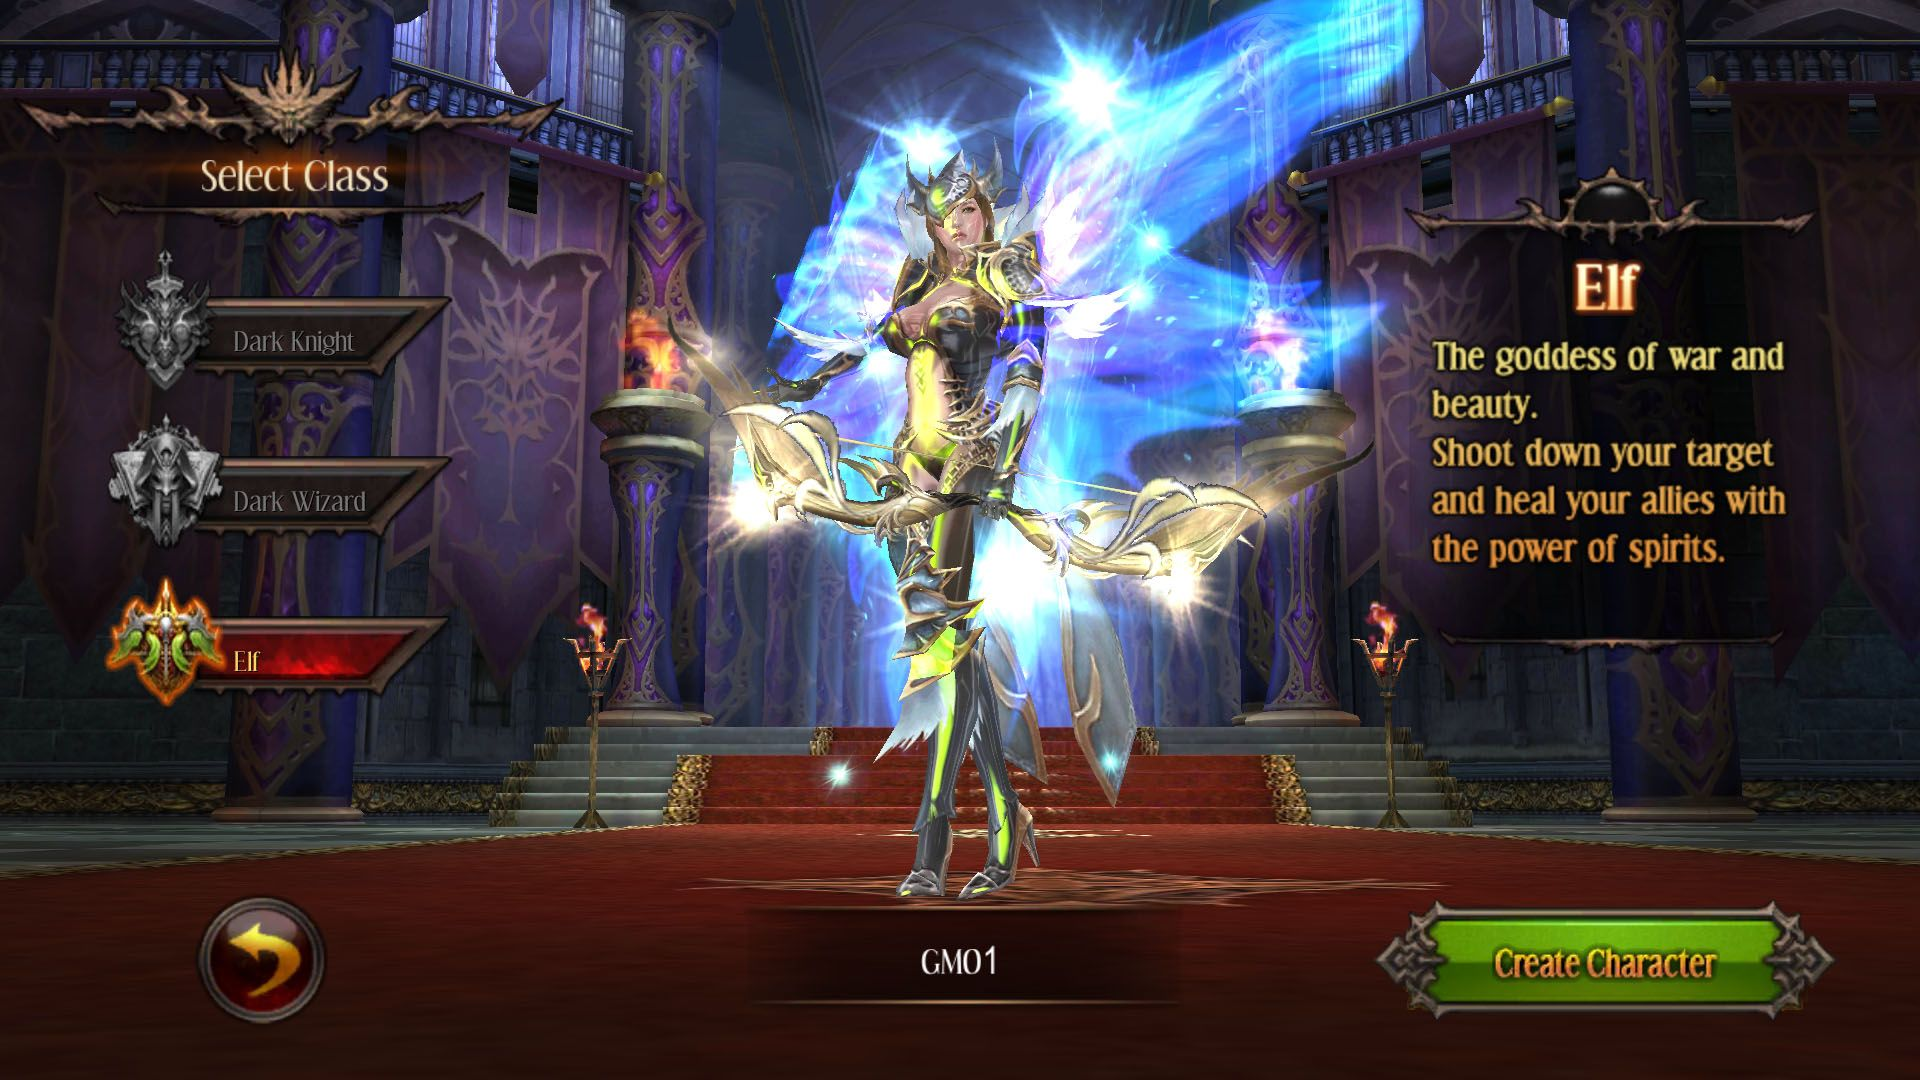 MU Origin Free Online MMORPG and MMO Games List - OnRPG | Games in